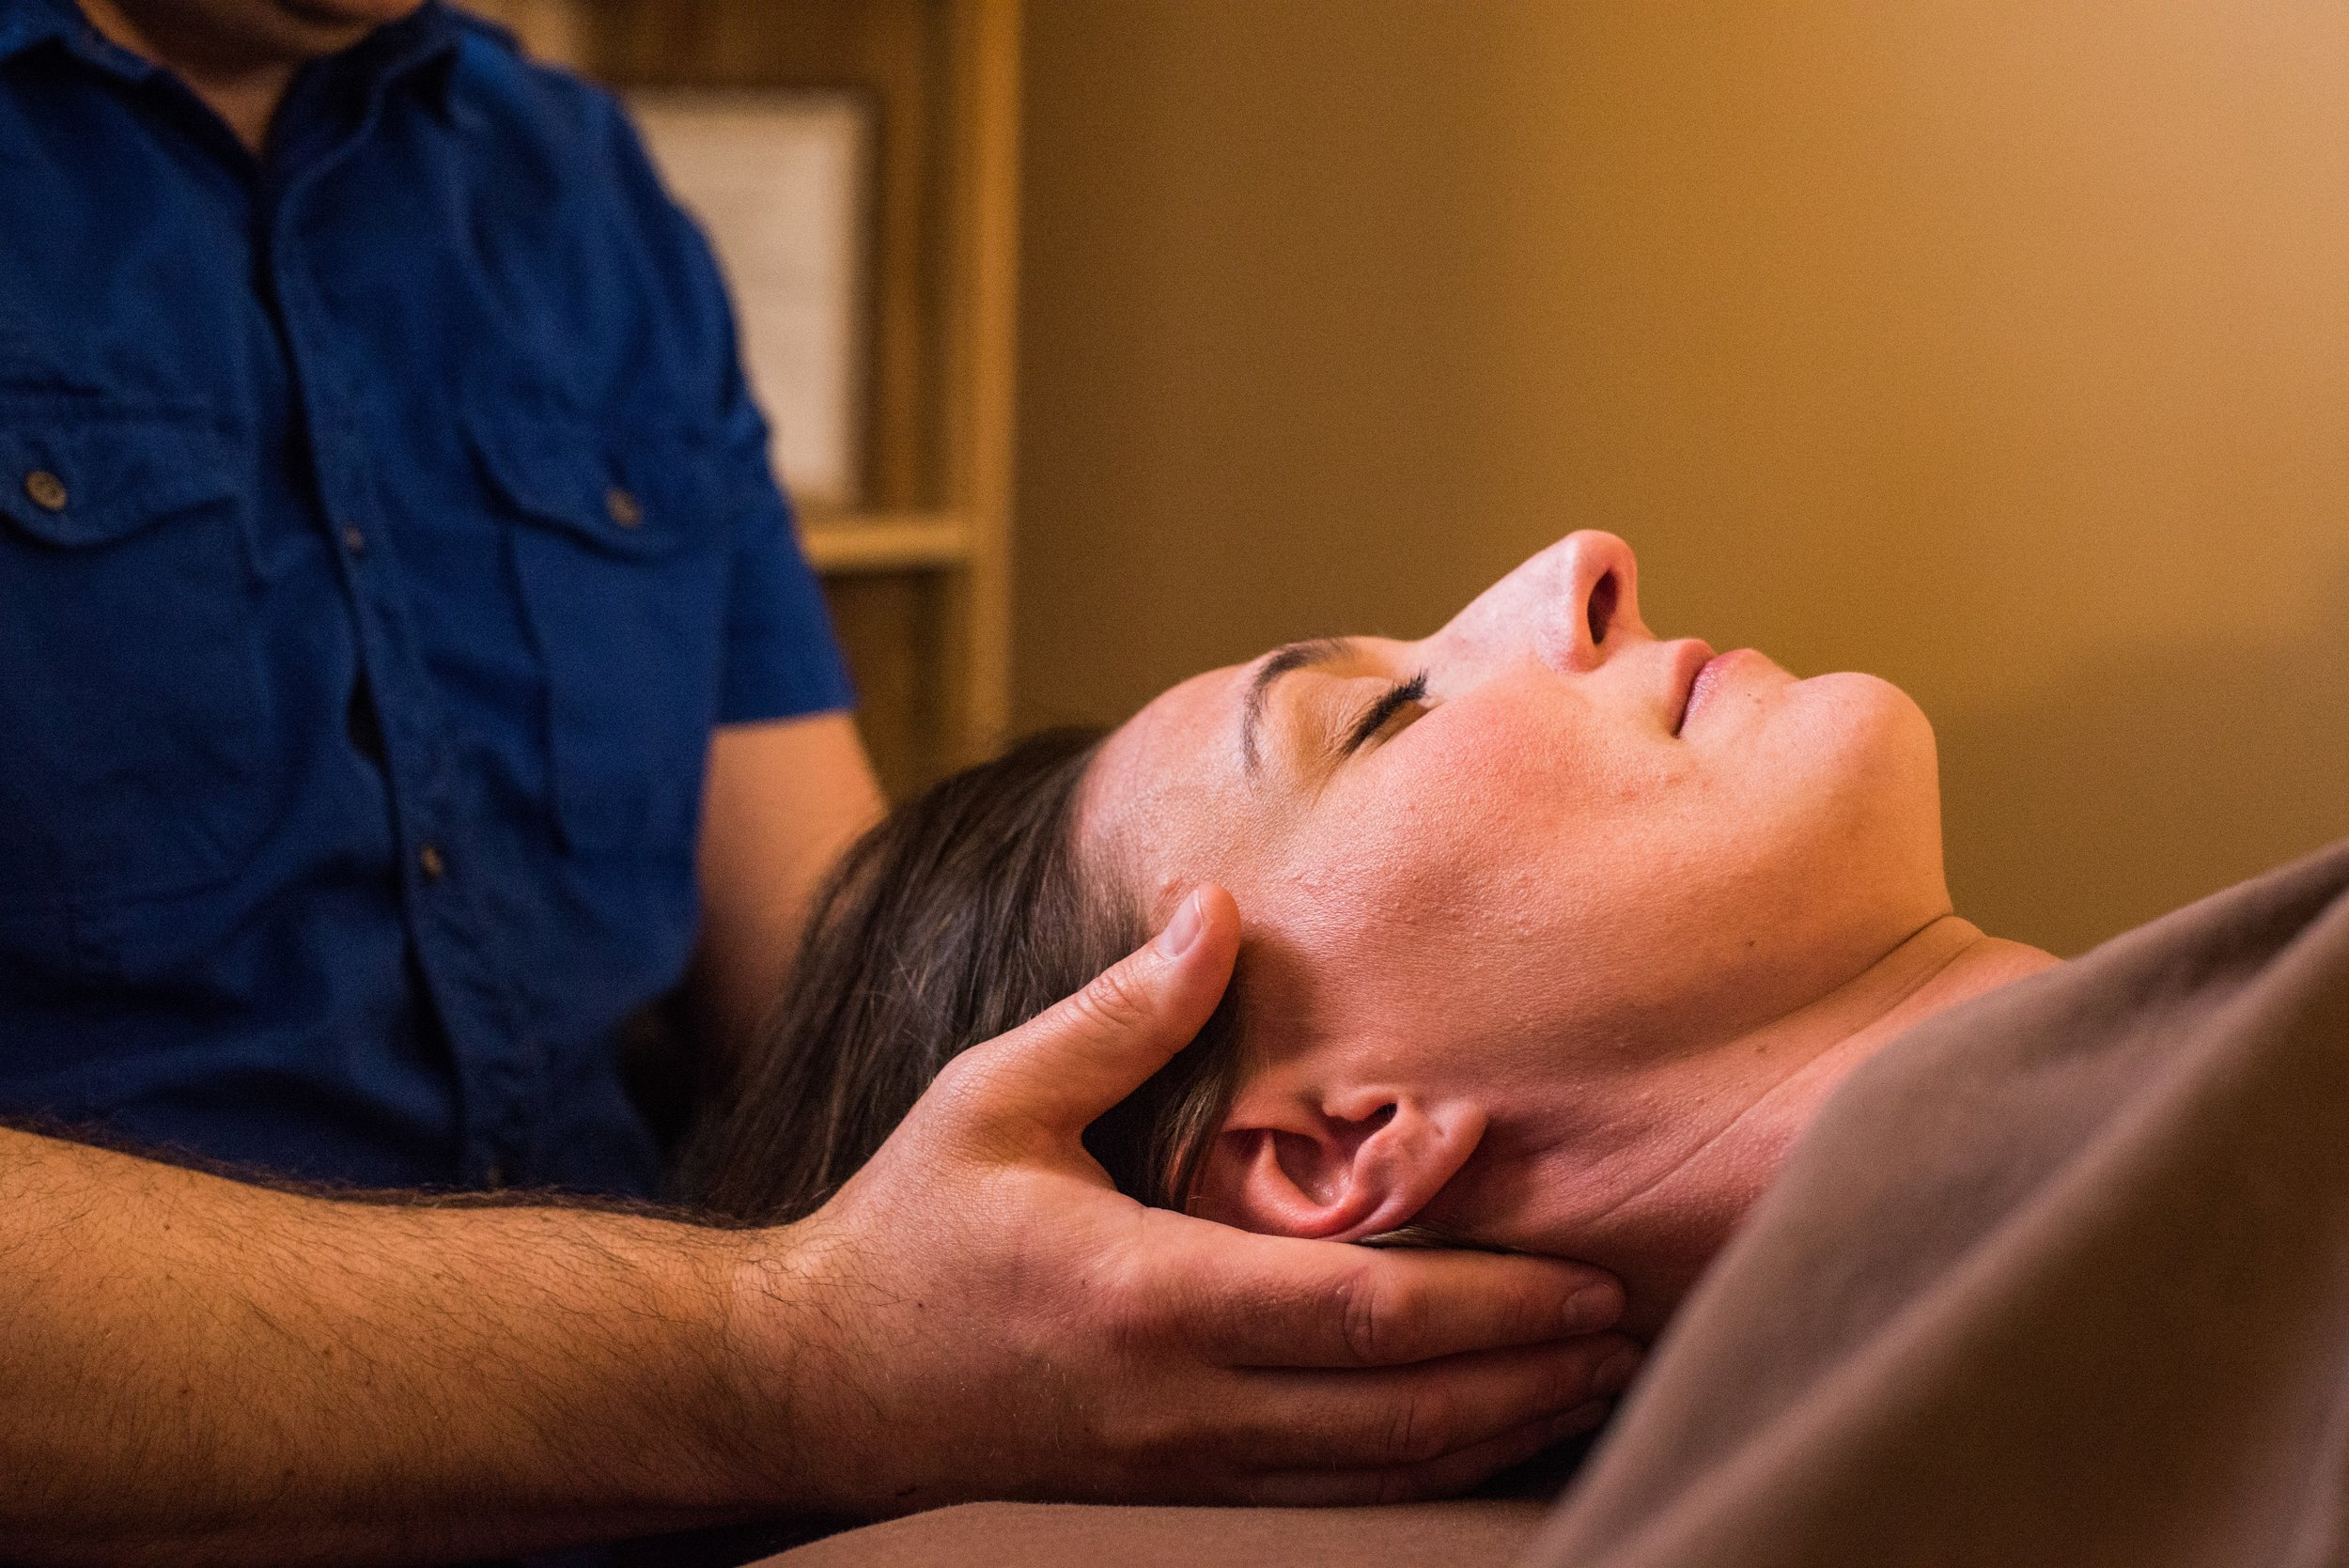 """Craniosacral Therapy - ReVibe's premiere modality. Based upon Osteopathic techniques, this very subtle bodywork enhances the flow of cerebrospinal fluid, which nourishes the central part of your nervous system, the brain and spinal cord. Your nervous system controls the functions of all other systems of the body: muscles, joints, etc., so if it's """"happy,"""" other systems are happy. If you are in need of the deepest state of relaxation, this is your modality. 60 minutes is the minimum duration for BCST."""